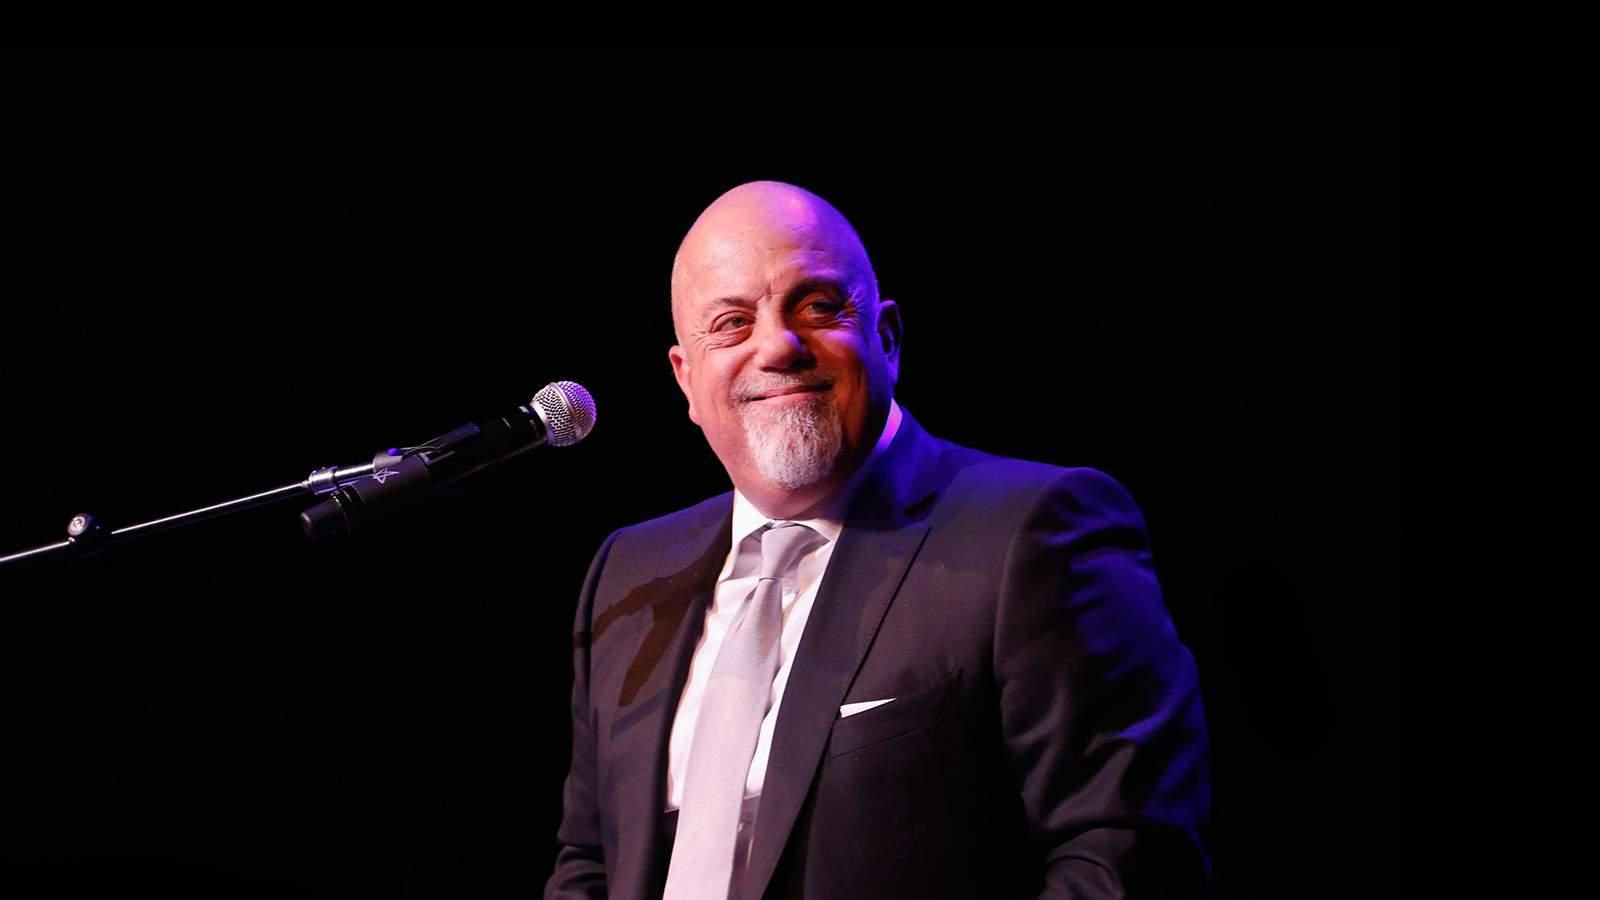 Billy Joel (Rescheduled from 6/6/2020, 12/20/2020)